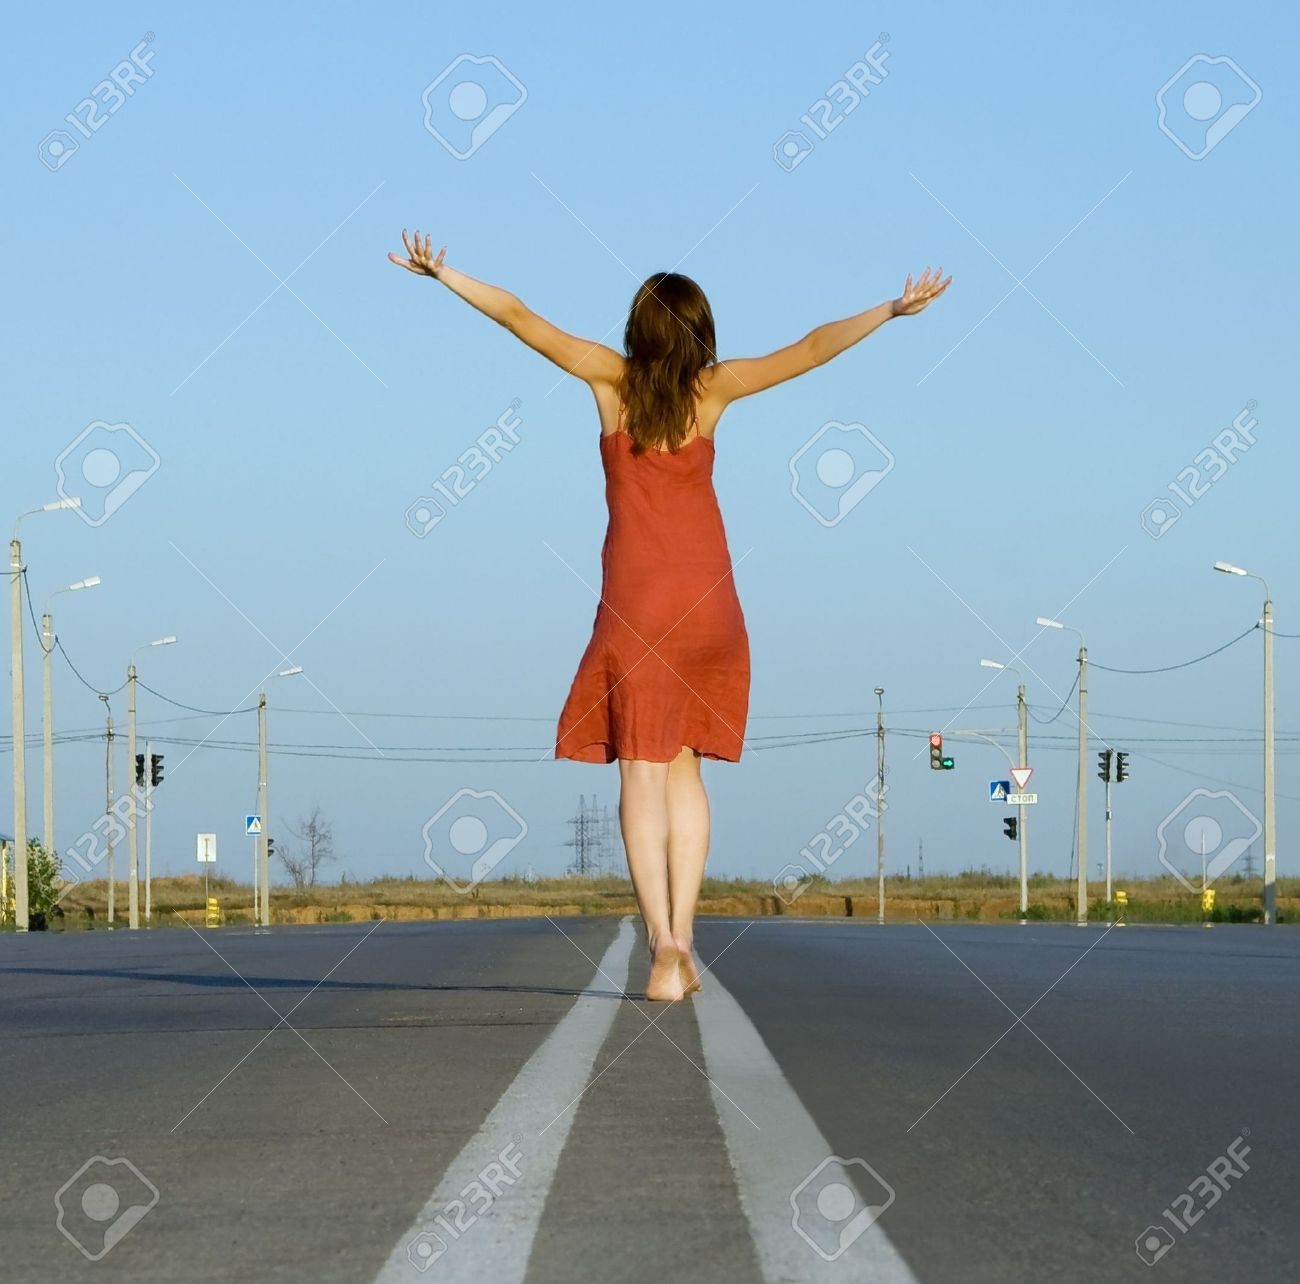 girl in red dress walk barefoot on empty road Stock Photo - 7519558